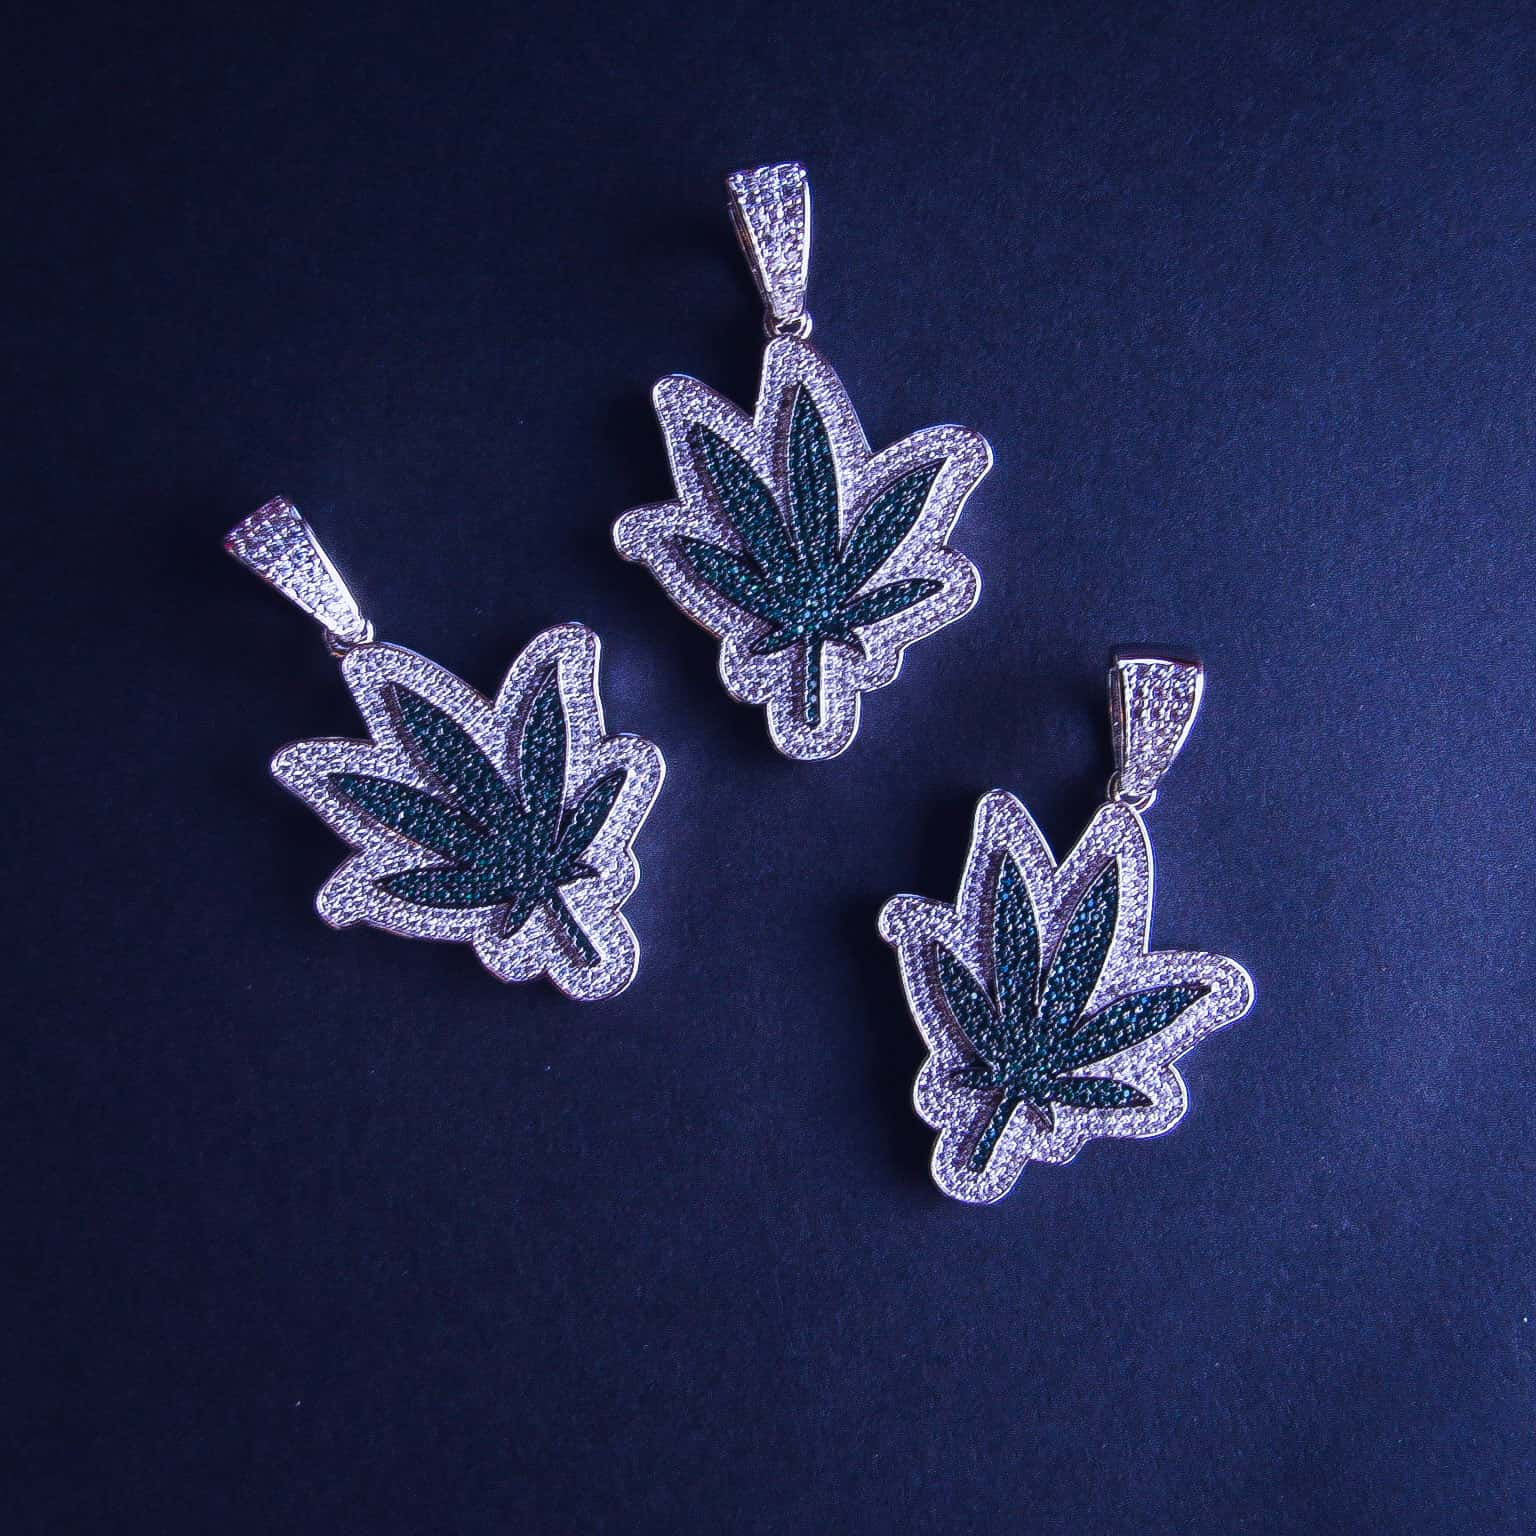 Weed Leaf Pendant - IcedGold